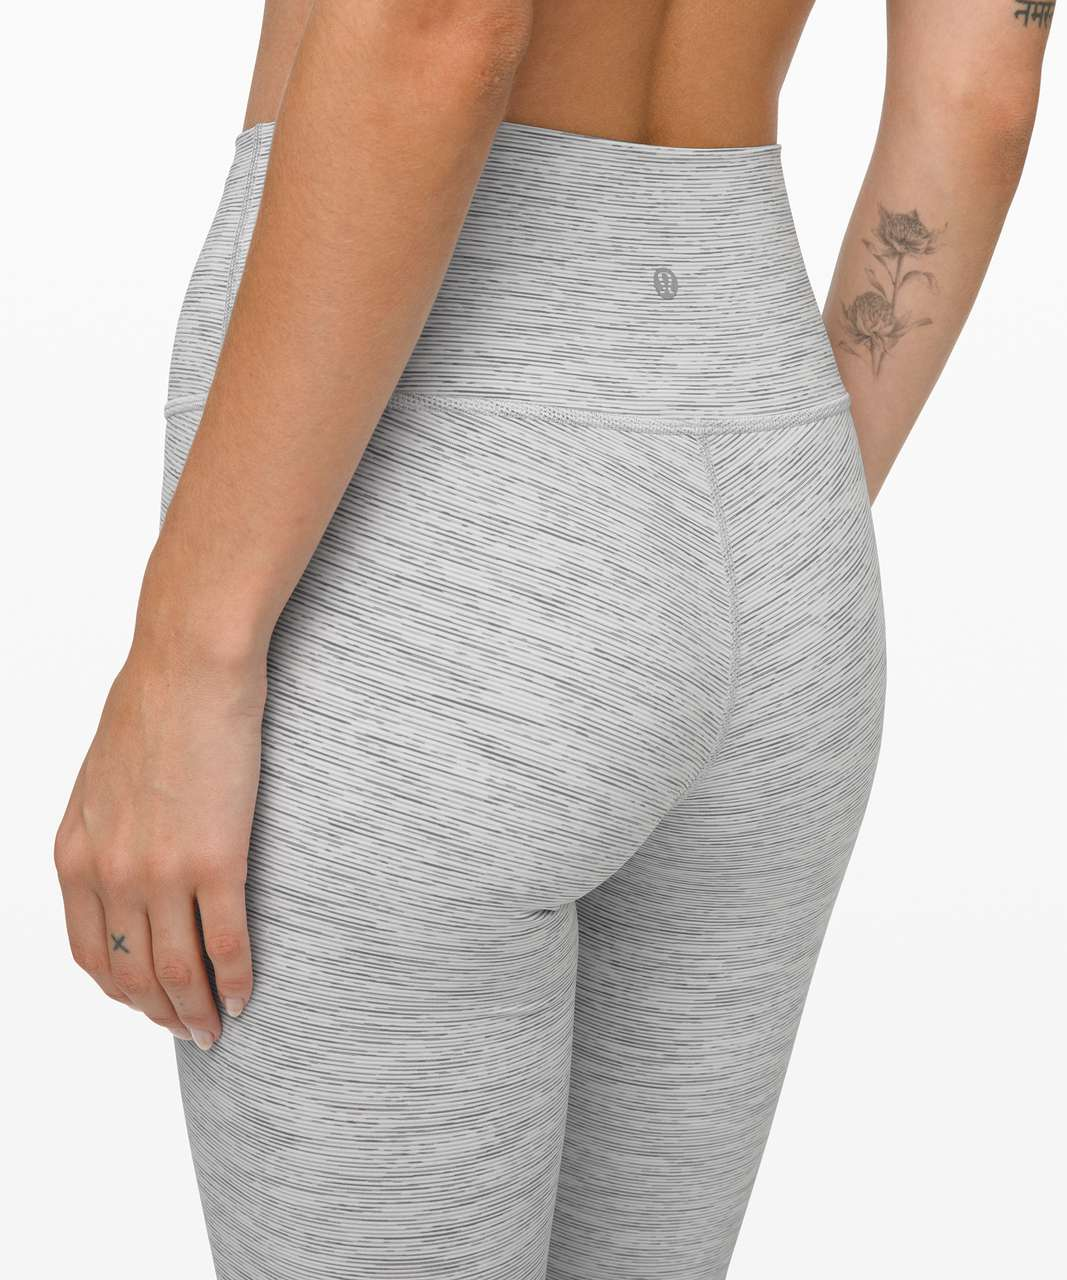 "Lululemon Wunder Under High-Rise Tight 28"" *Full-On Luxtreme - Wee Are From Space Nimbus Battleship"